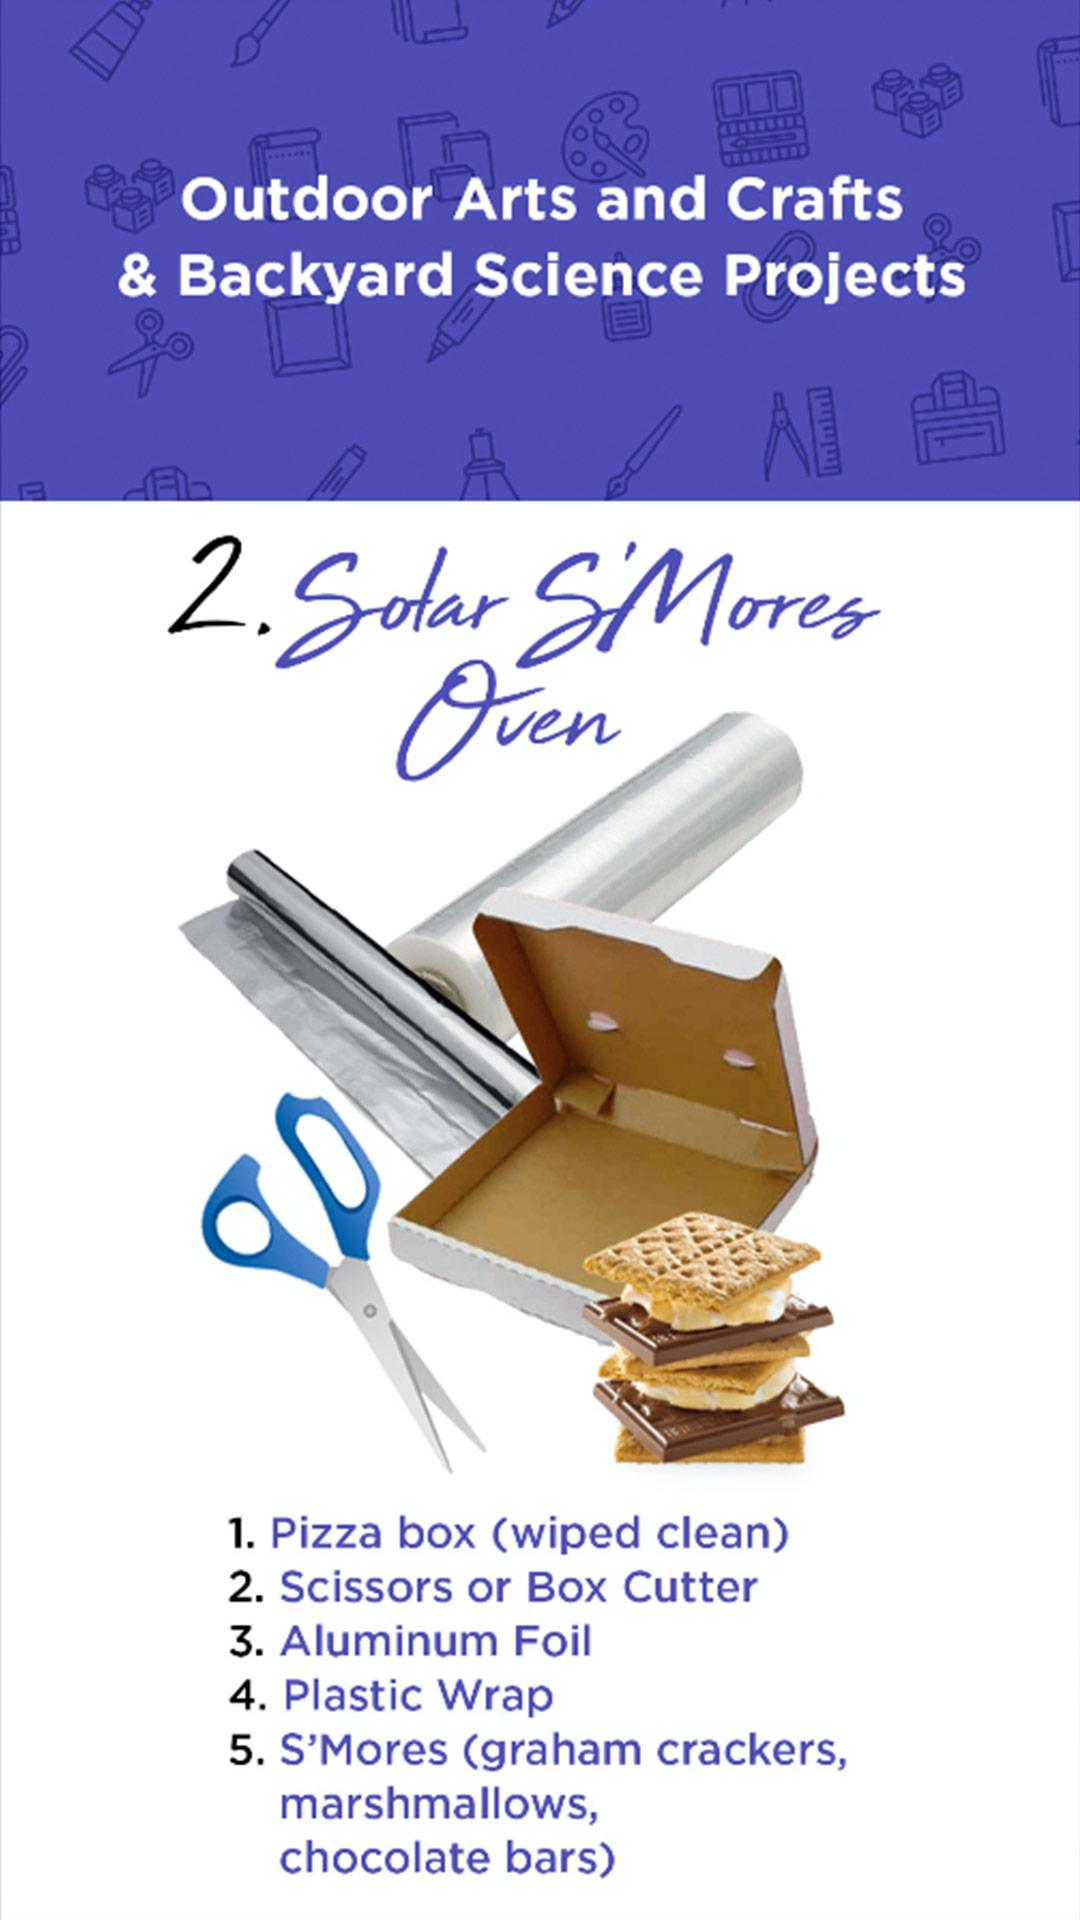 How to Make a Solar Smores Oven